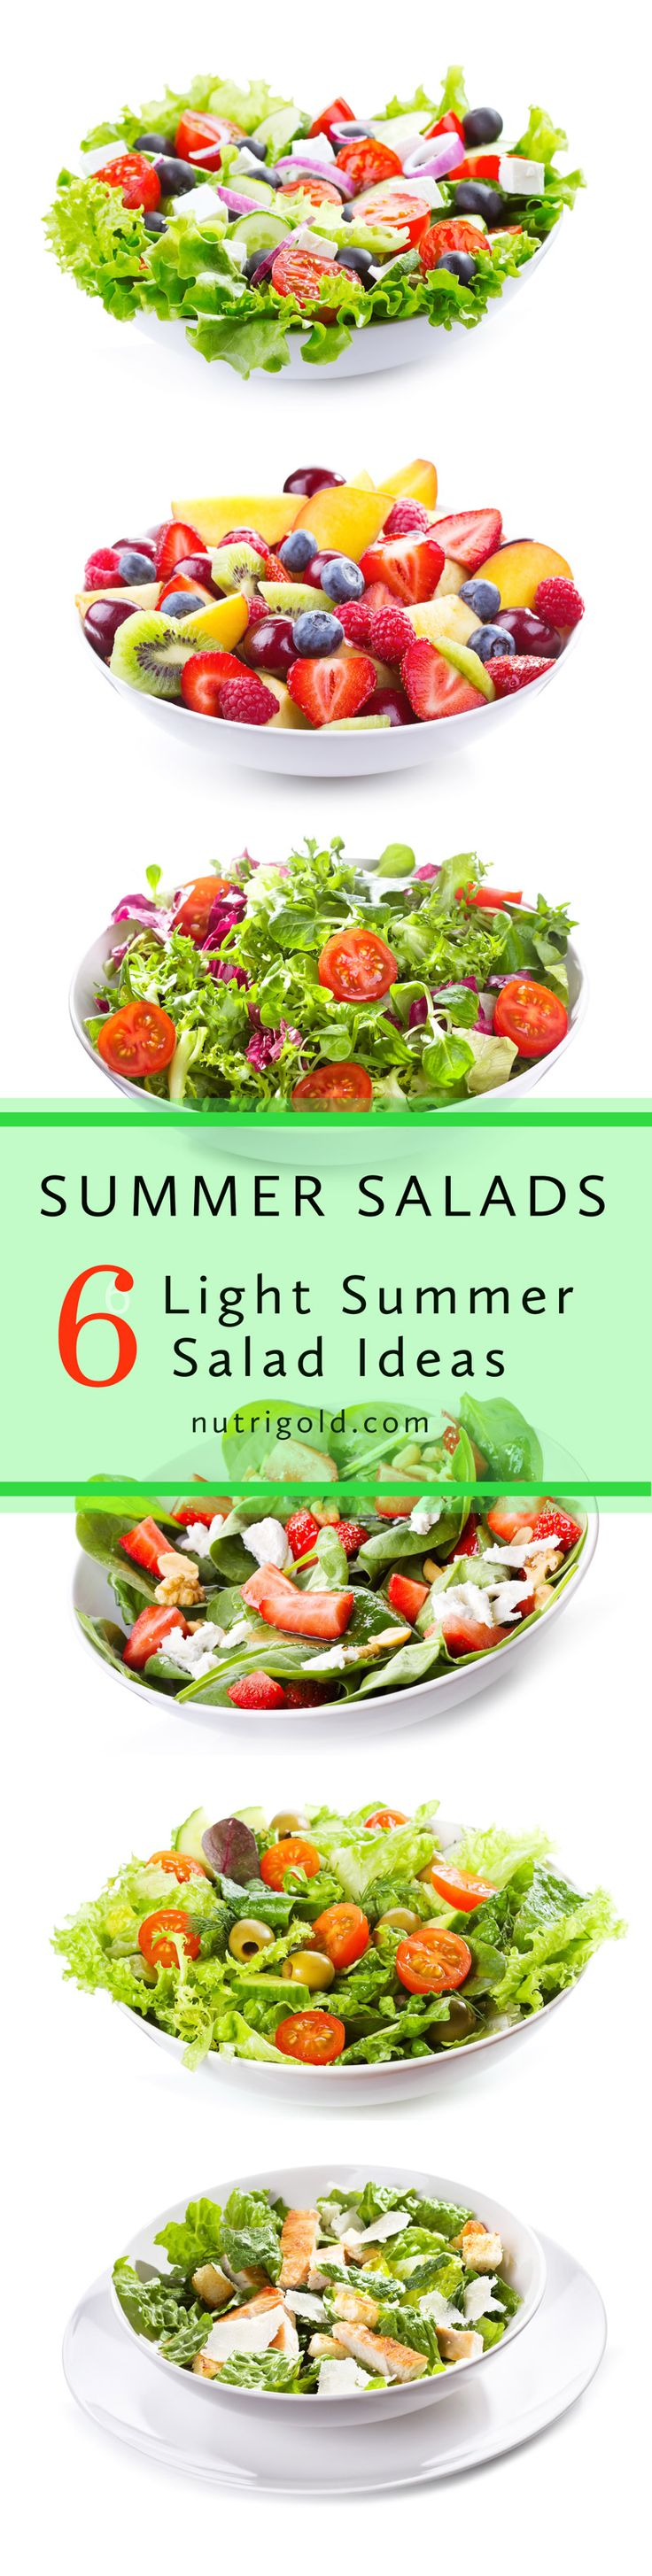 Six Summer Salads Welcome to summer! One of the best things about summer is the access to fresh, local, organic produce. And what better way to celebrate produce than a glorious salad. Here are six of our favorite summer salad recipes. Enjoy! http://www.nutrigold.com/blog/six-summer-salads/